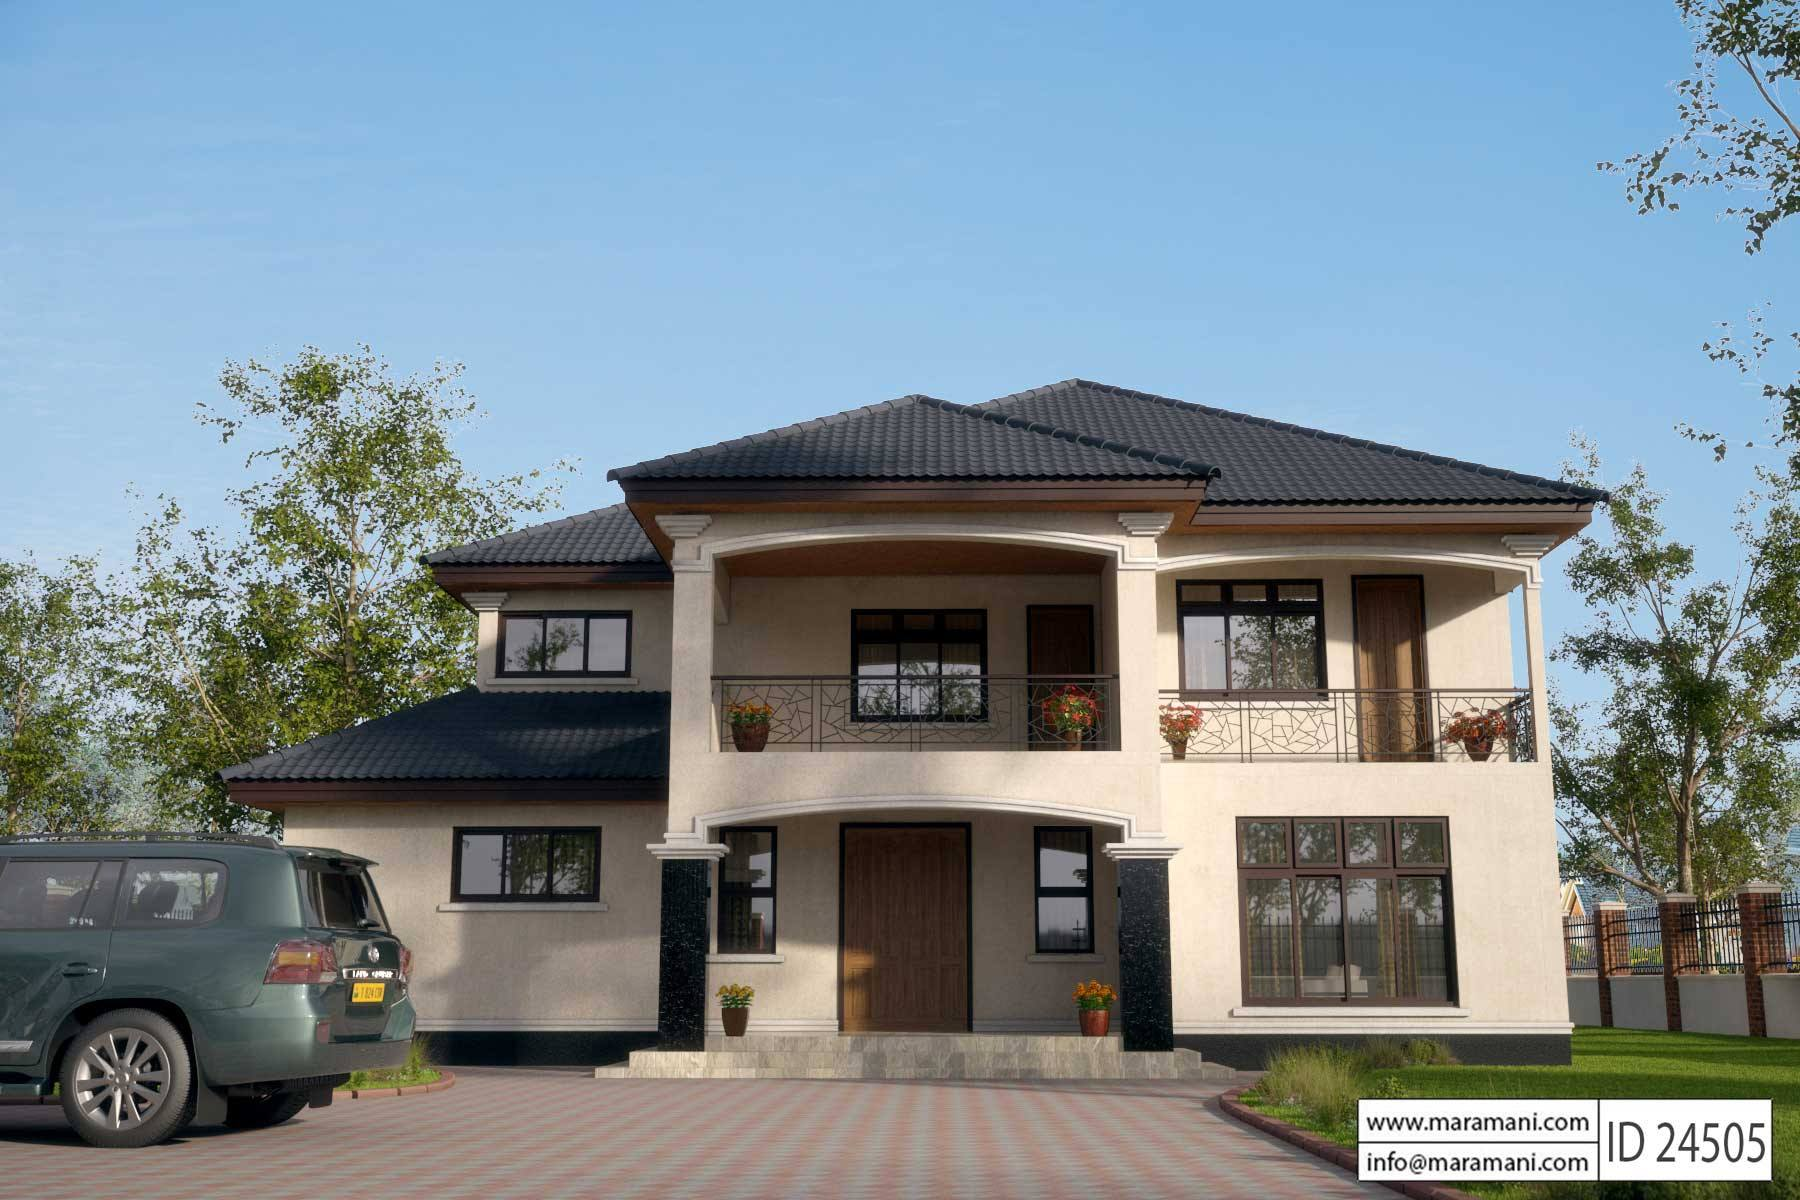 Beautiful African House Plans #4: 4 Bedroom House Plan - ID 24505